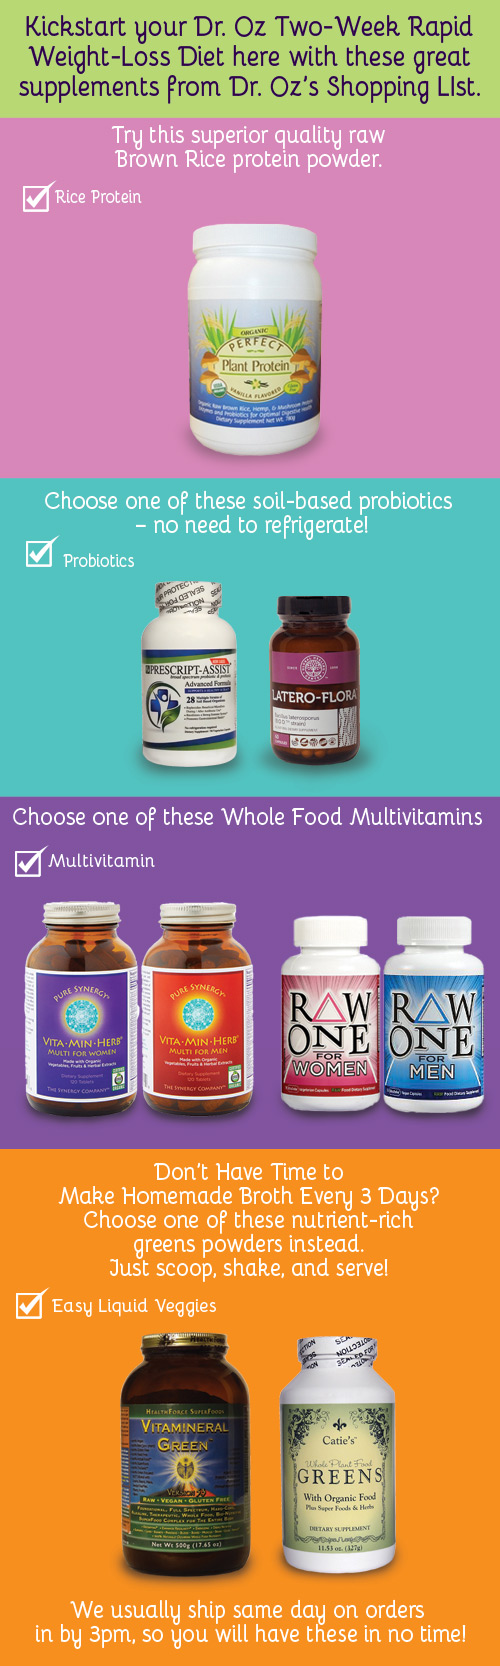 Kickstart your Dr. Oz Two-Week Rapid Weight-Loss Diet here with these great supplements from Dr. Oz's Shopping LIst.